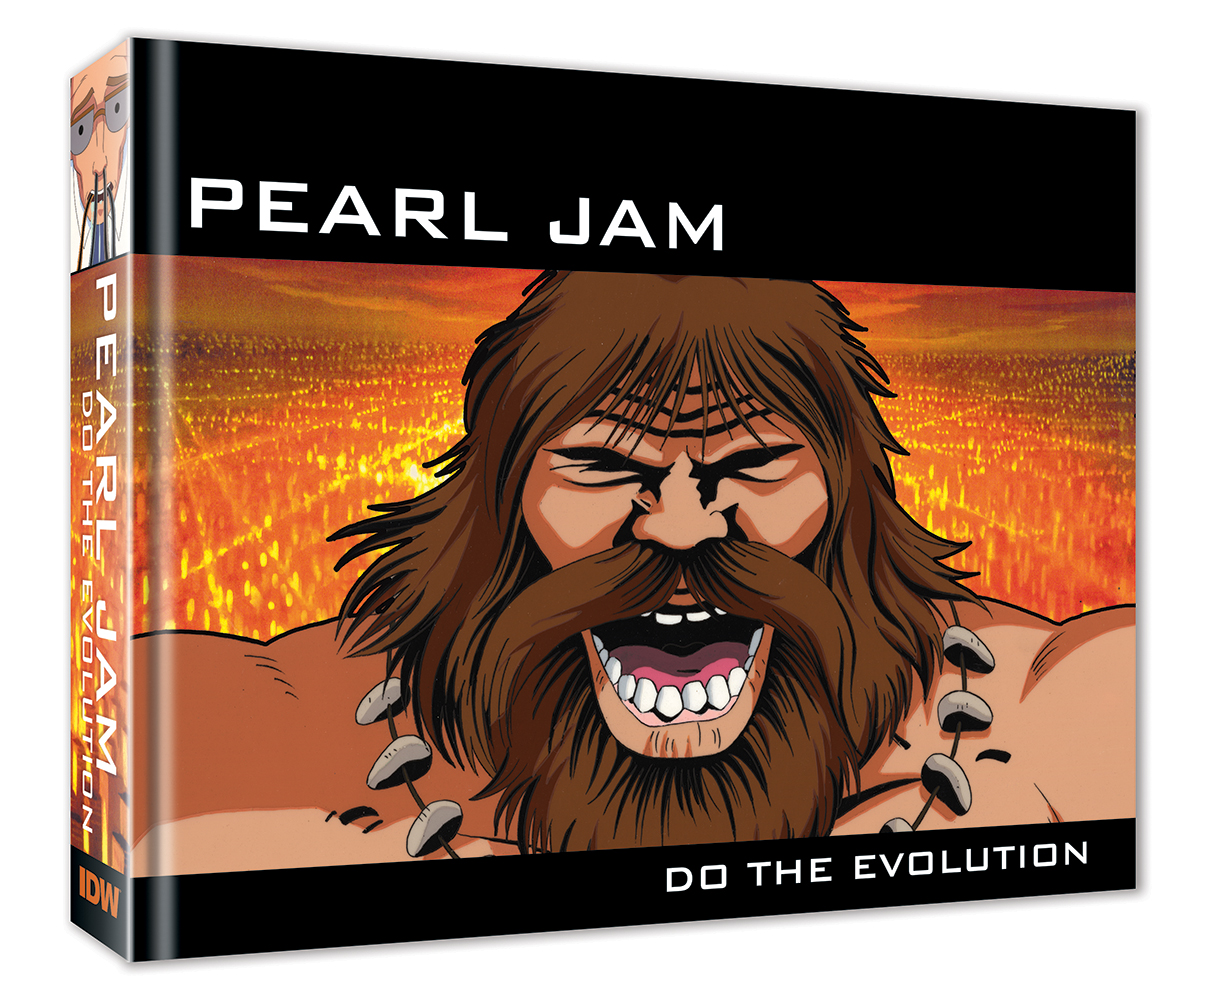 Pearl Jam Music Video Art Book Comes To IDW